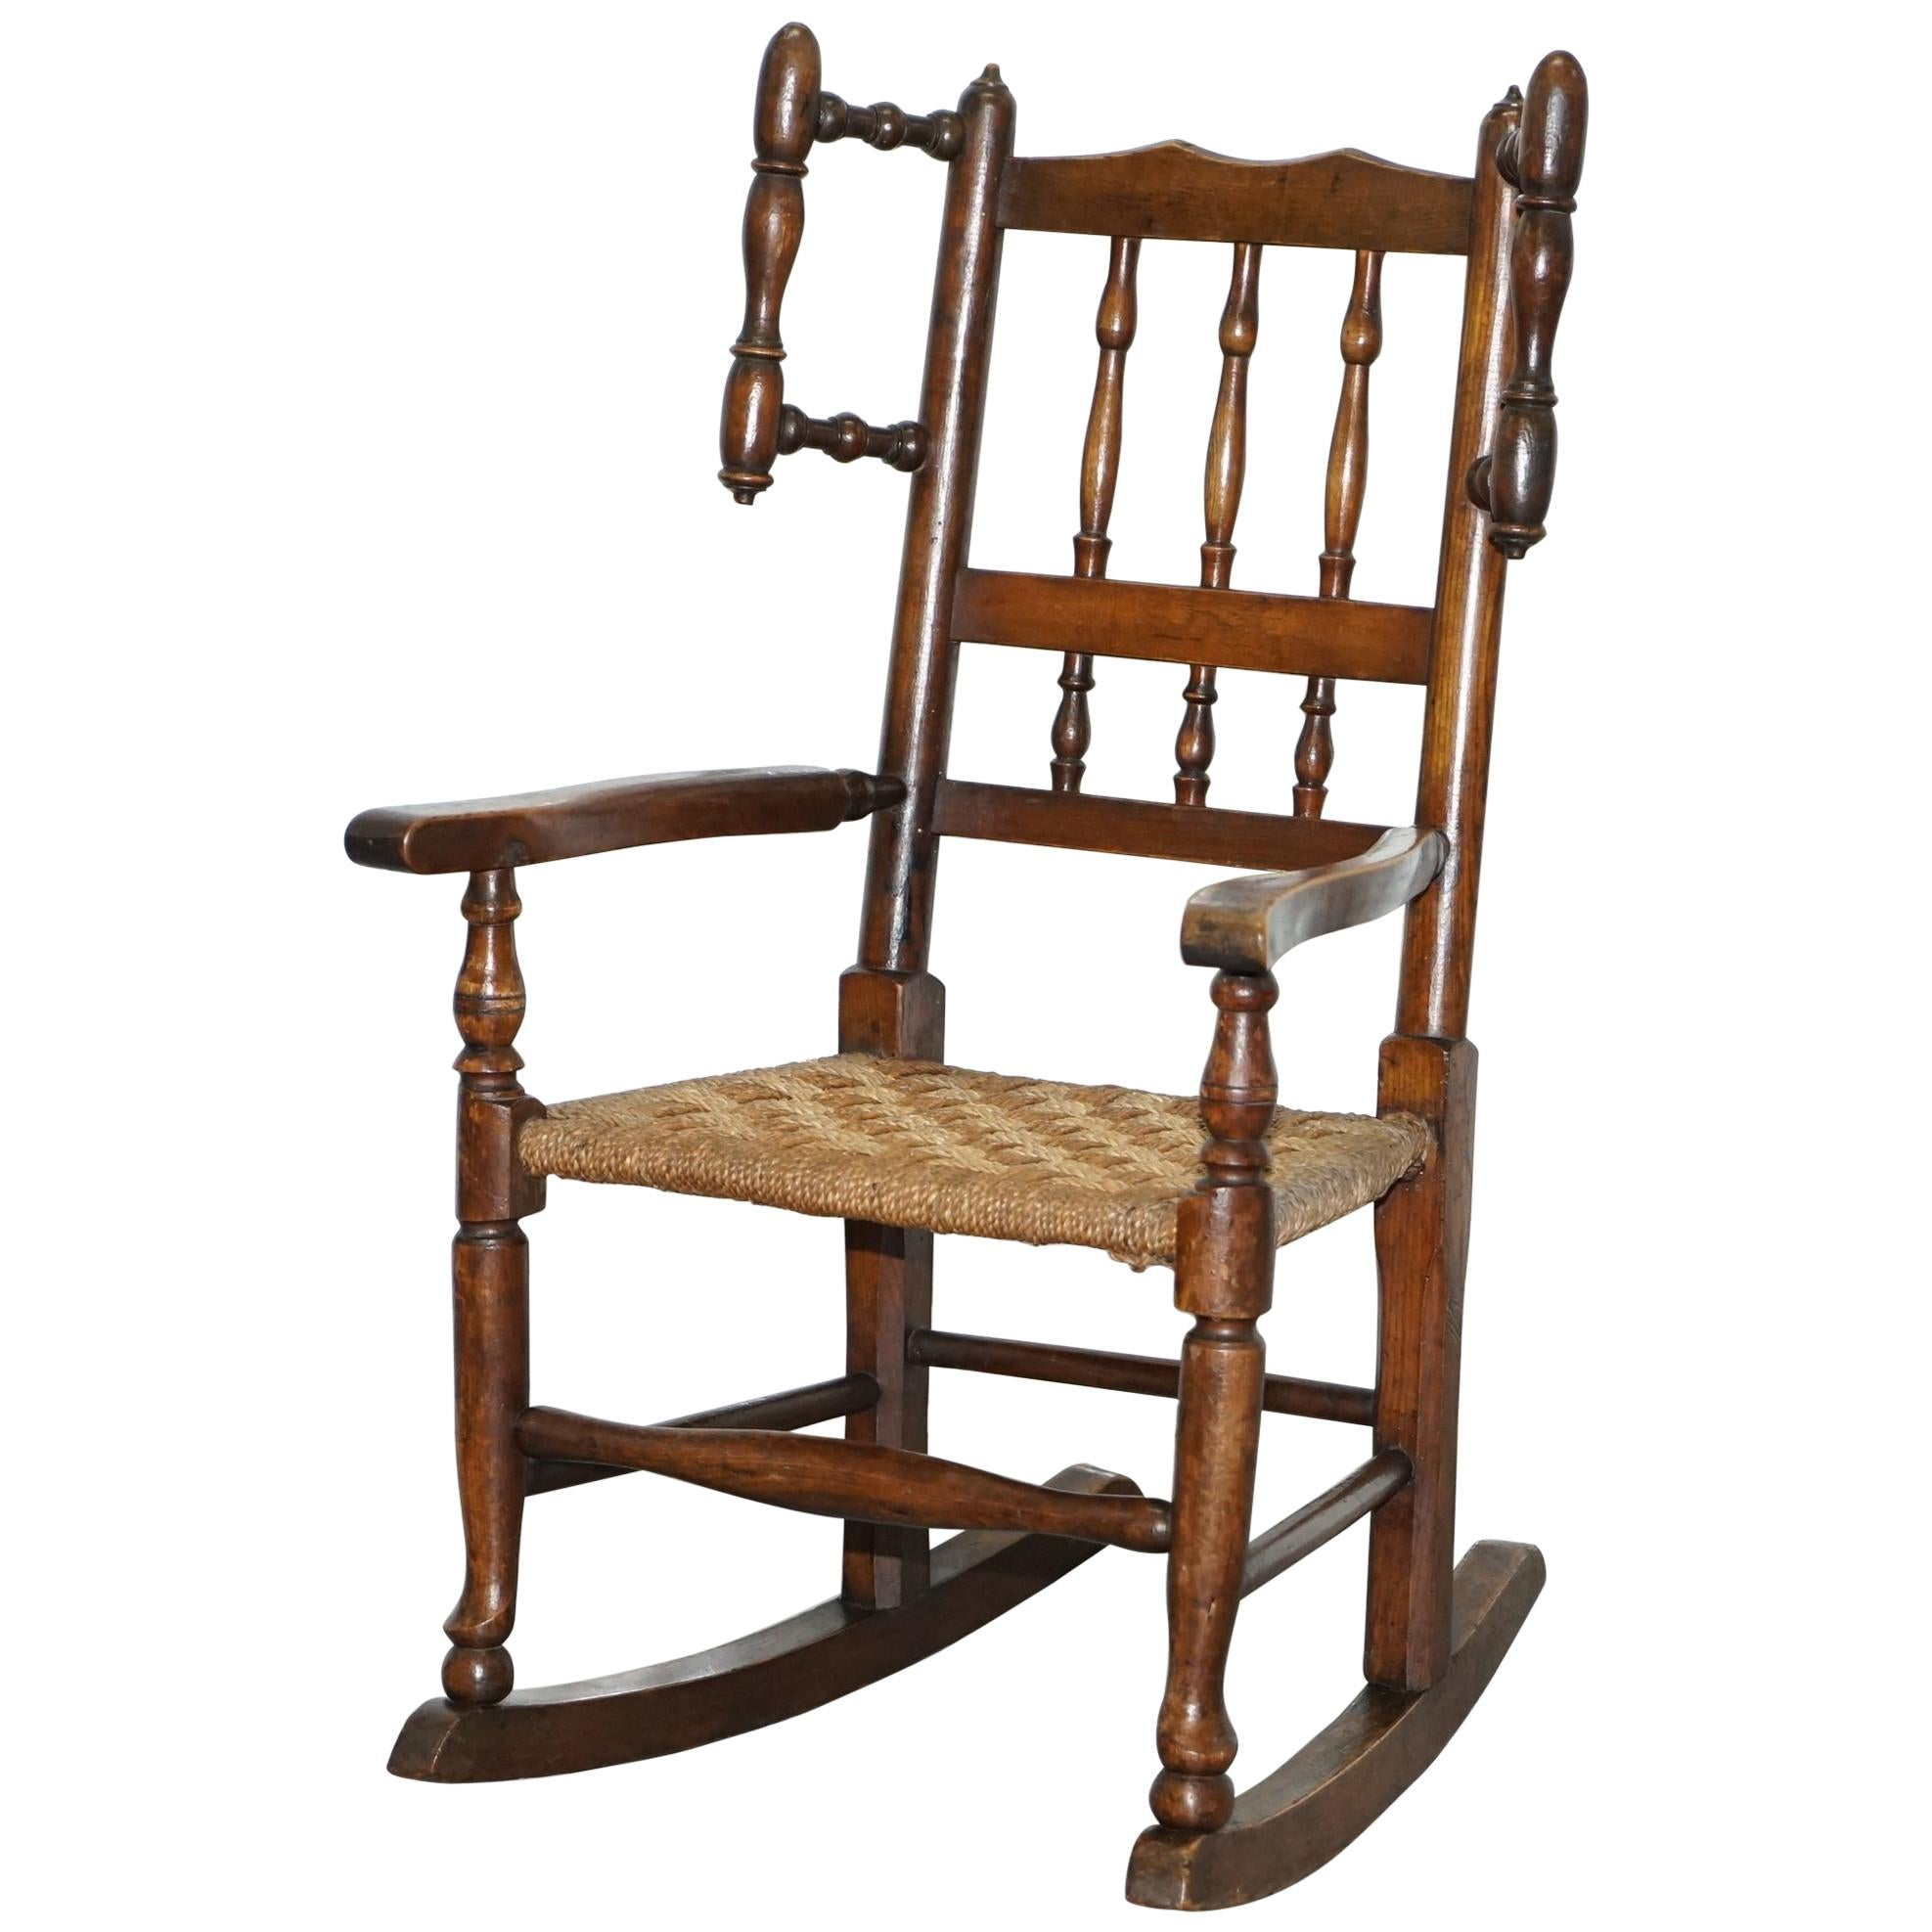 Rare Children S Small Antique Rope Seat Georgian Rocking Chair Solid Elm Display For At 1stdibs